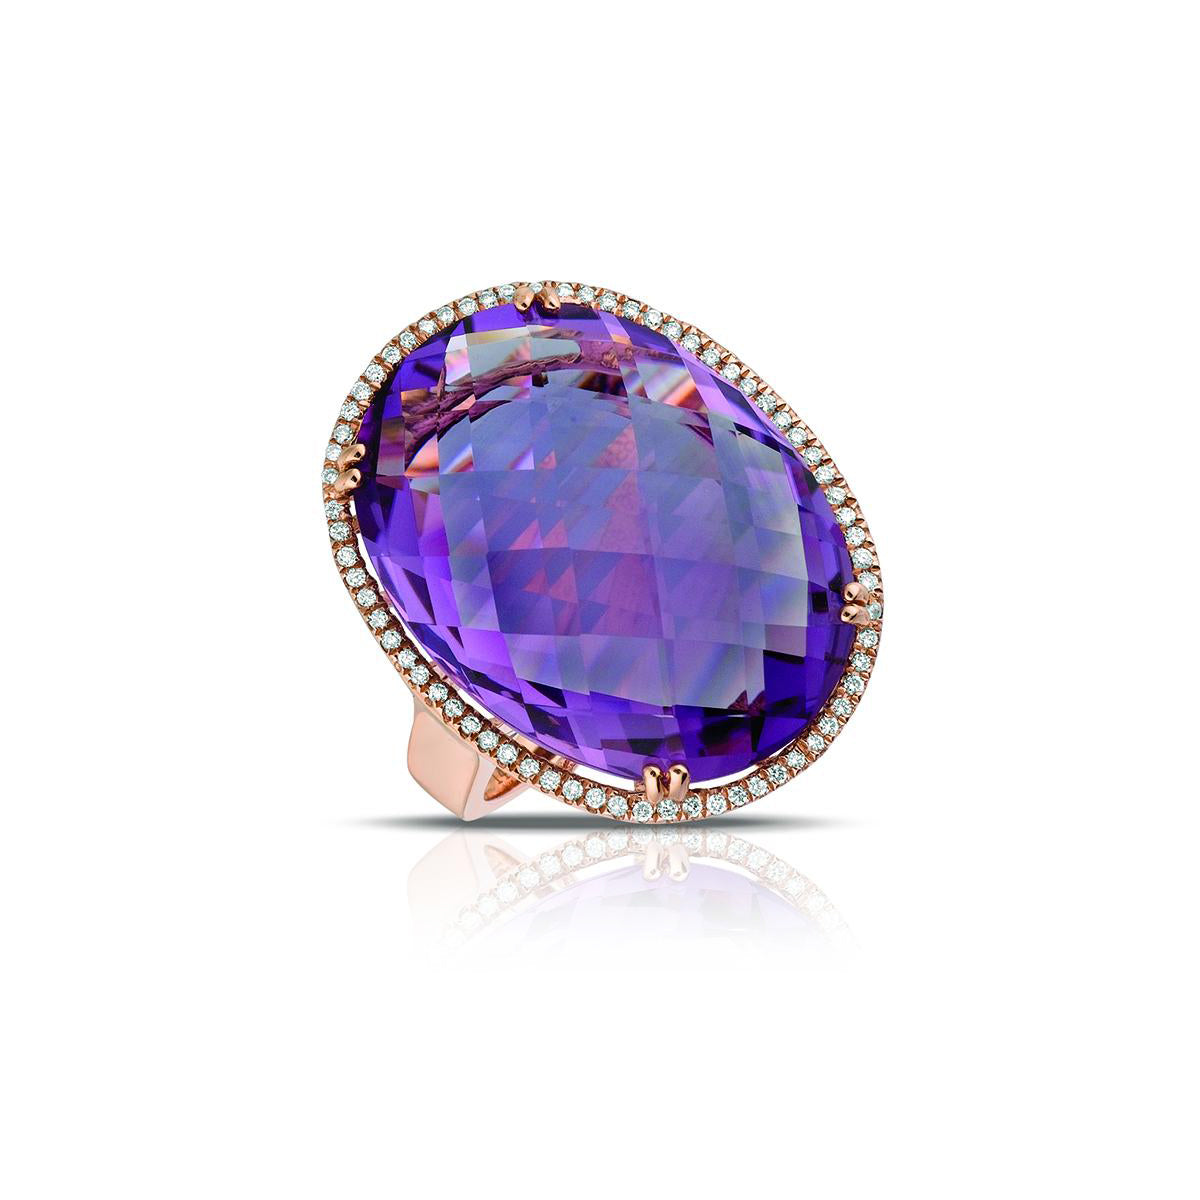 Marco Moore 14K Rose Gold Oval Cut Amethyst and White Diamond Ring